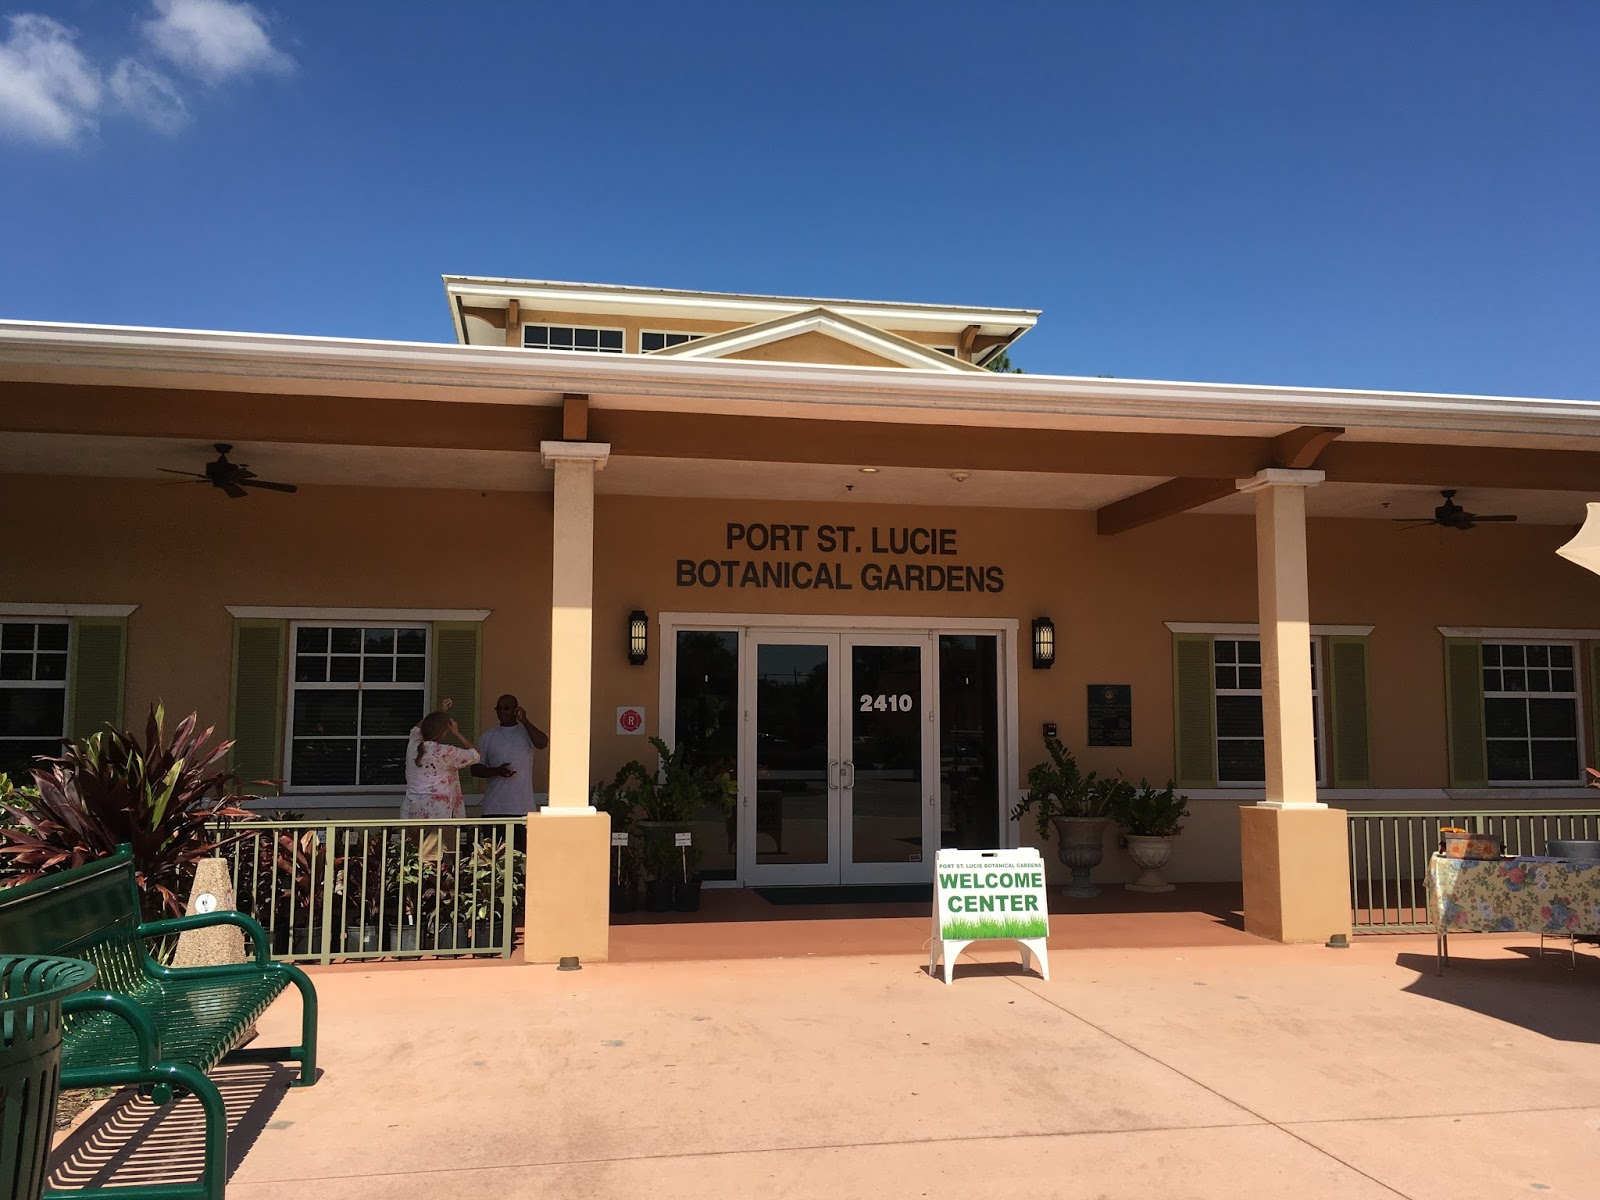 Meet Me in the Gift Shop: Port St Lucie Botanical Gardens